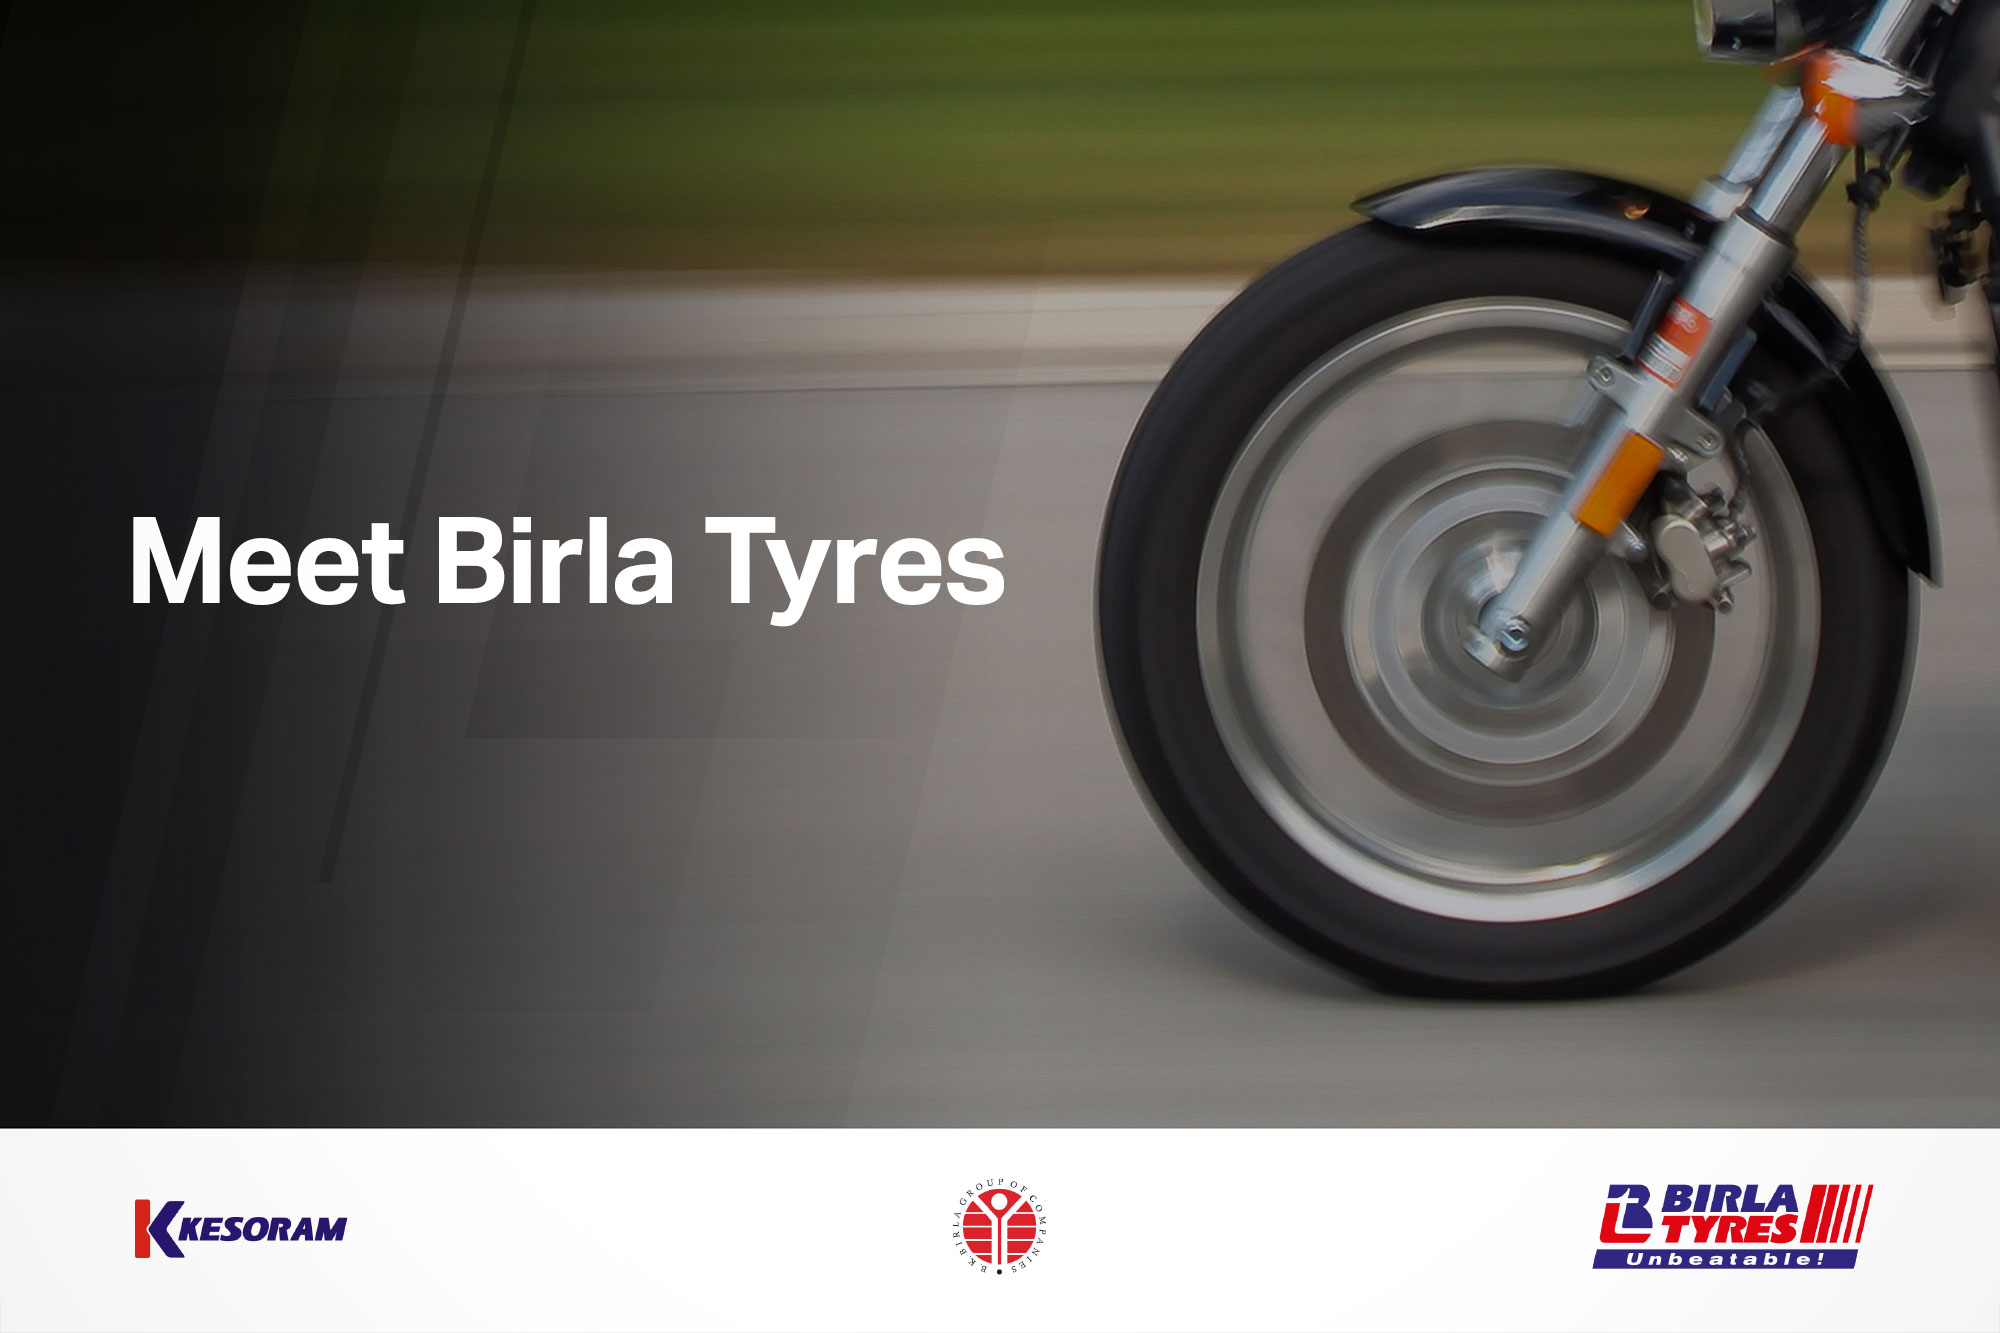 Birla Tyres - A new visual language and website to help Birla Tyres update their image in the marketplace.View project